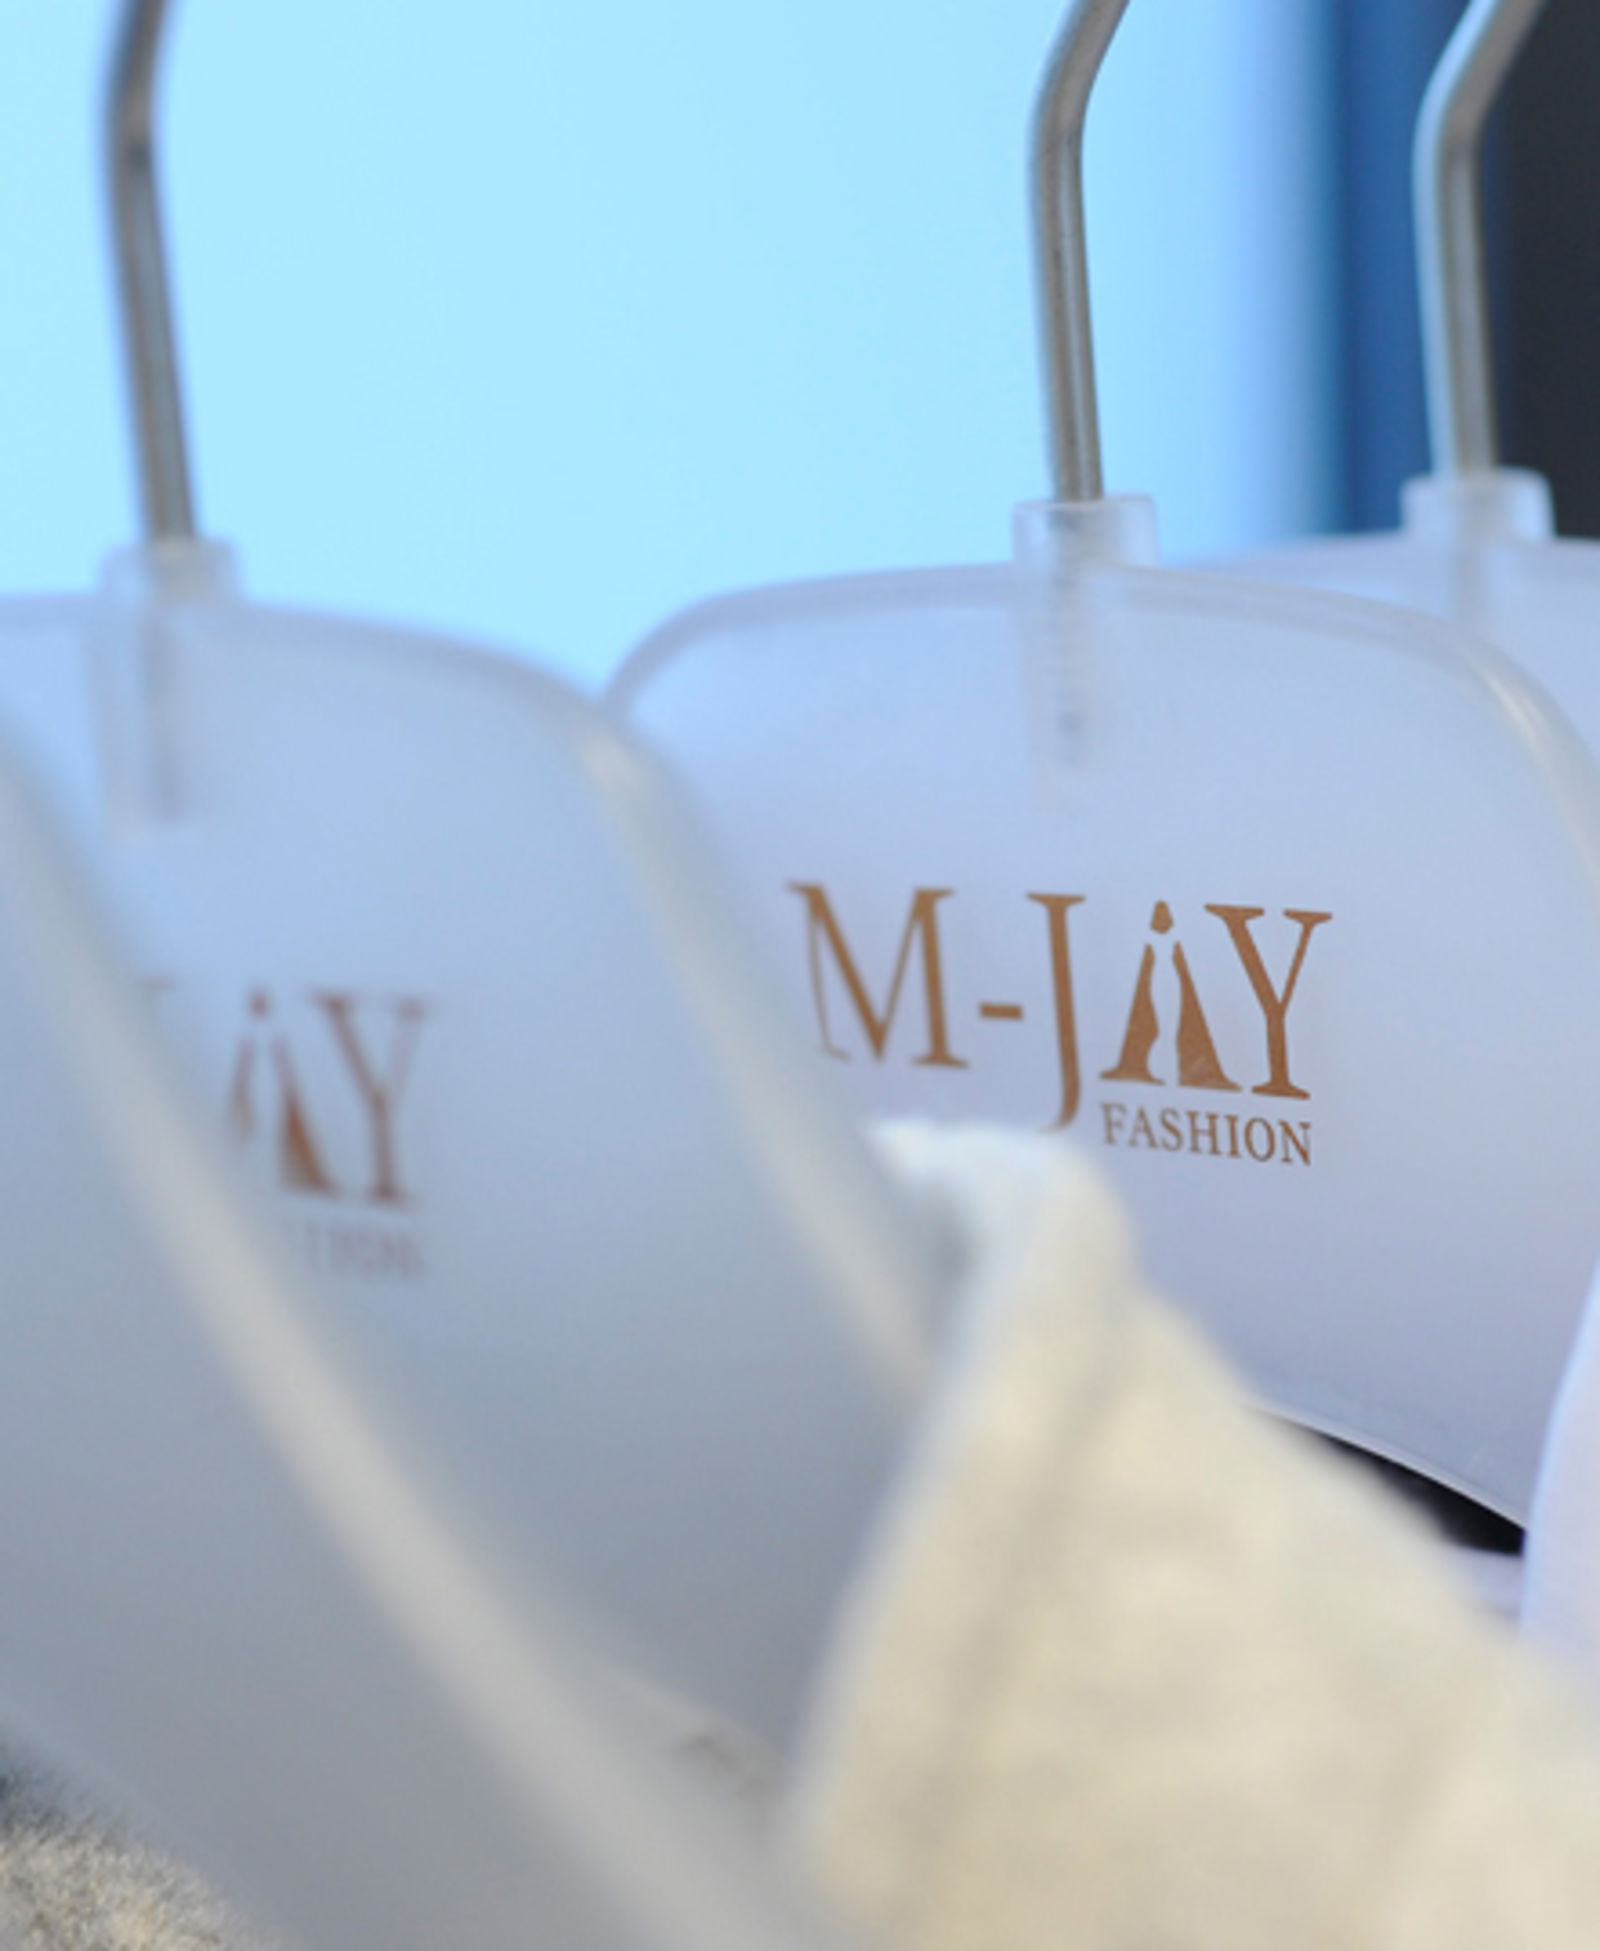 M-JAY Fashion in Hamburg (Bild 8)